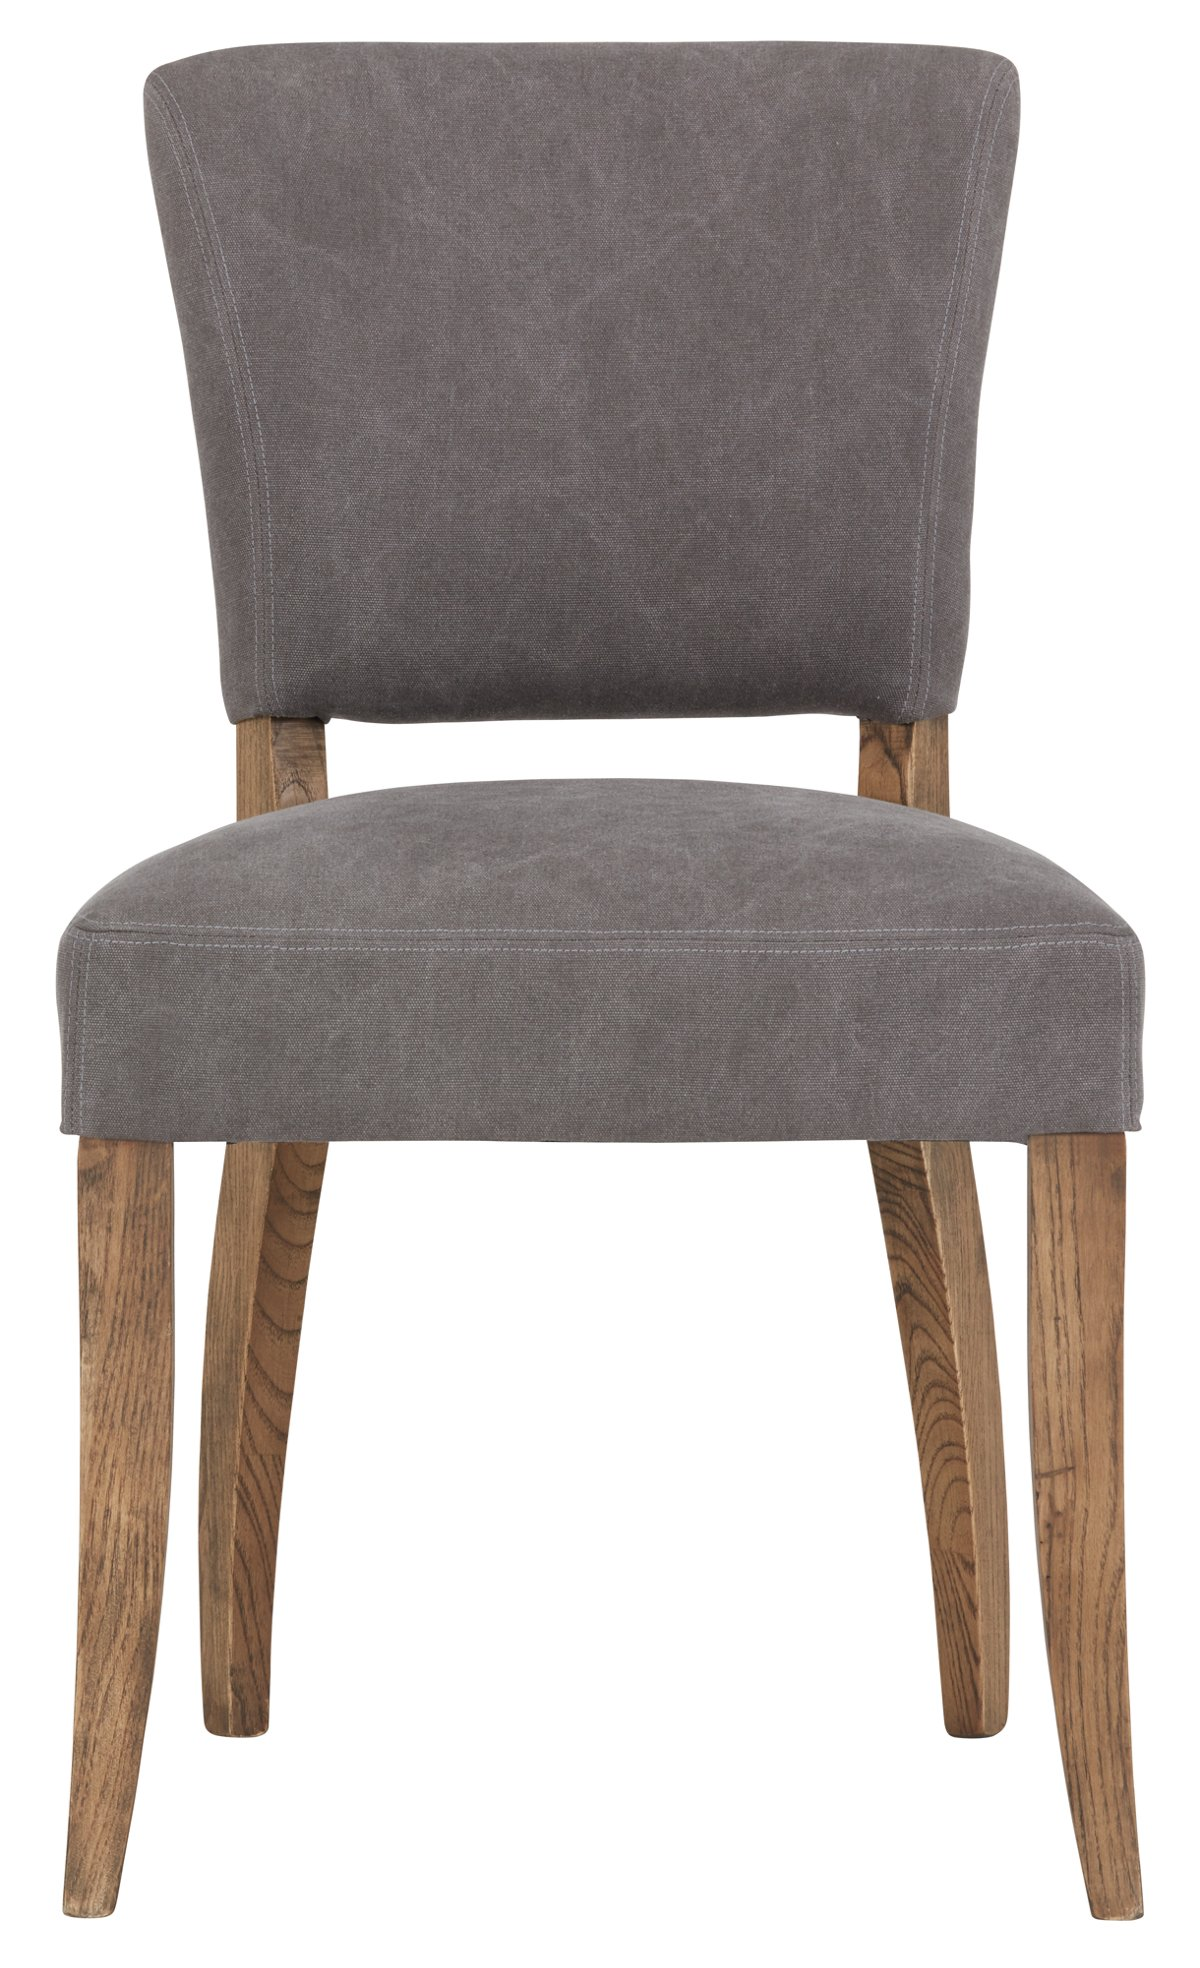 City Furniture Camilla Gray Upholstered Side Chair